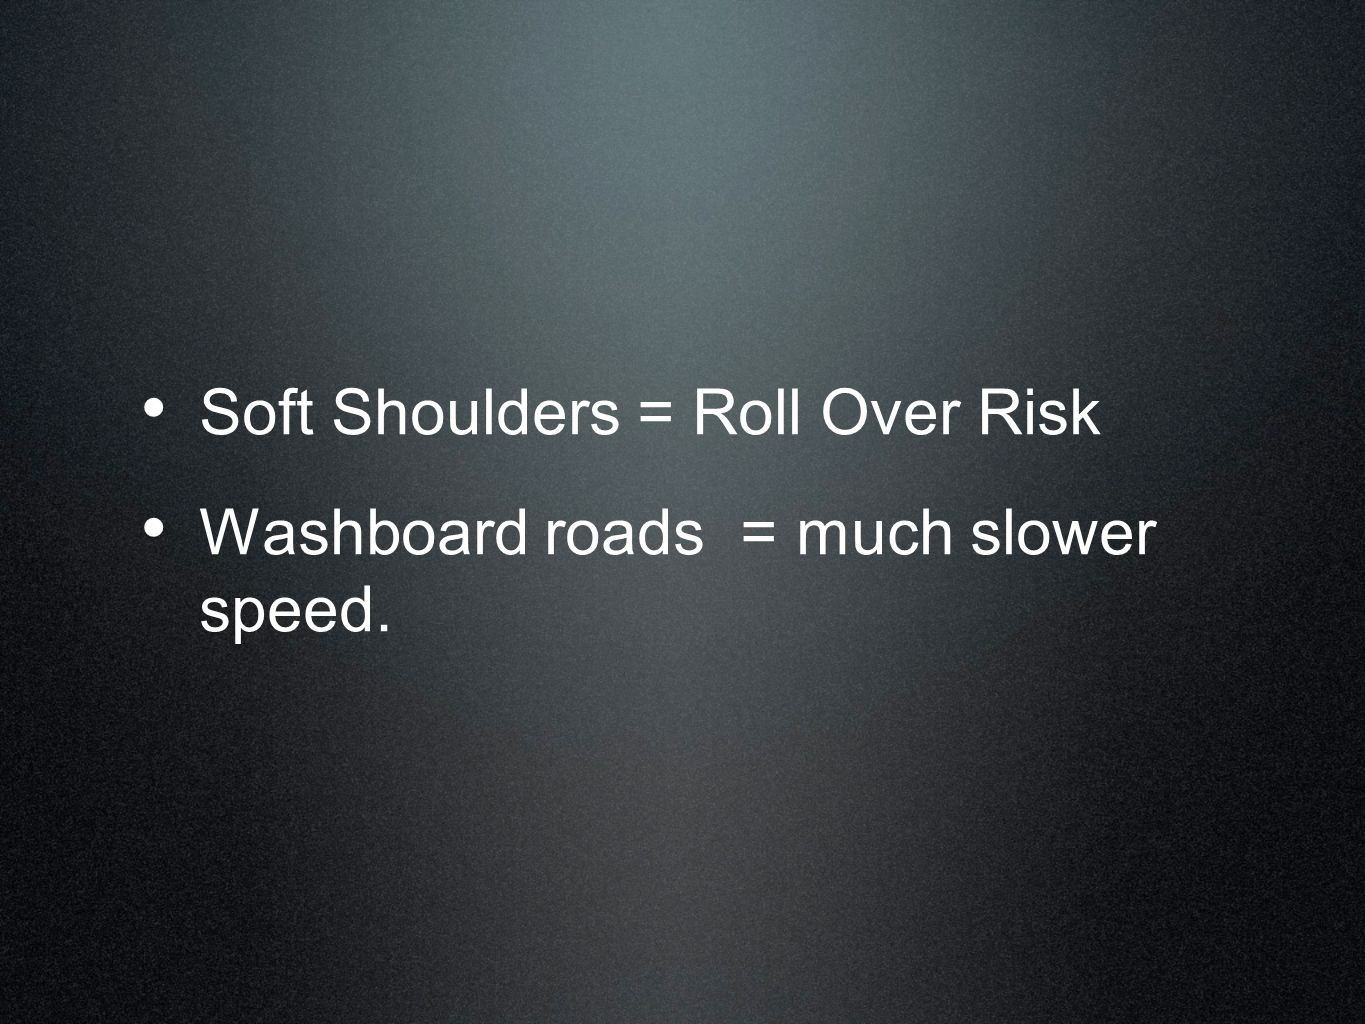 Soft Shoulders = Roll Over Risk